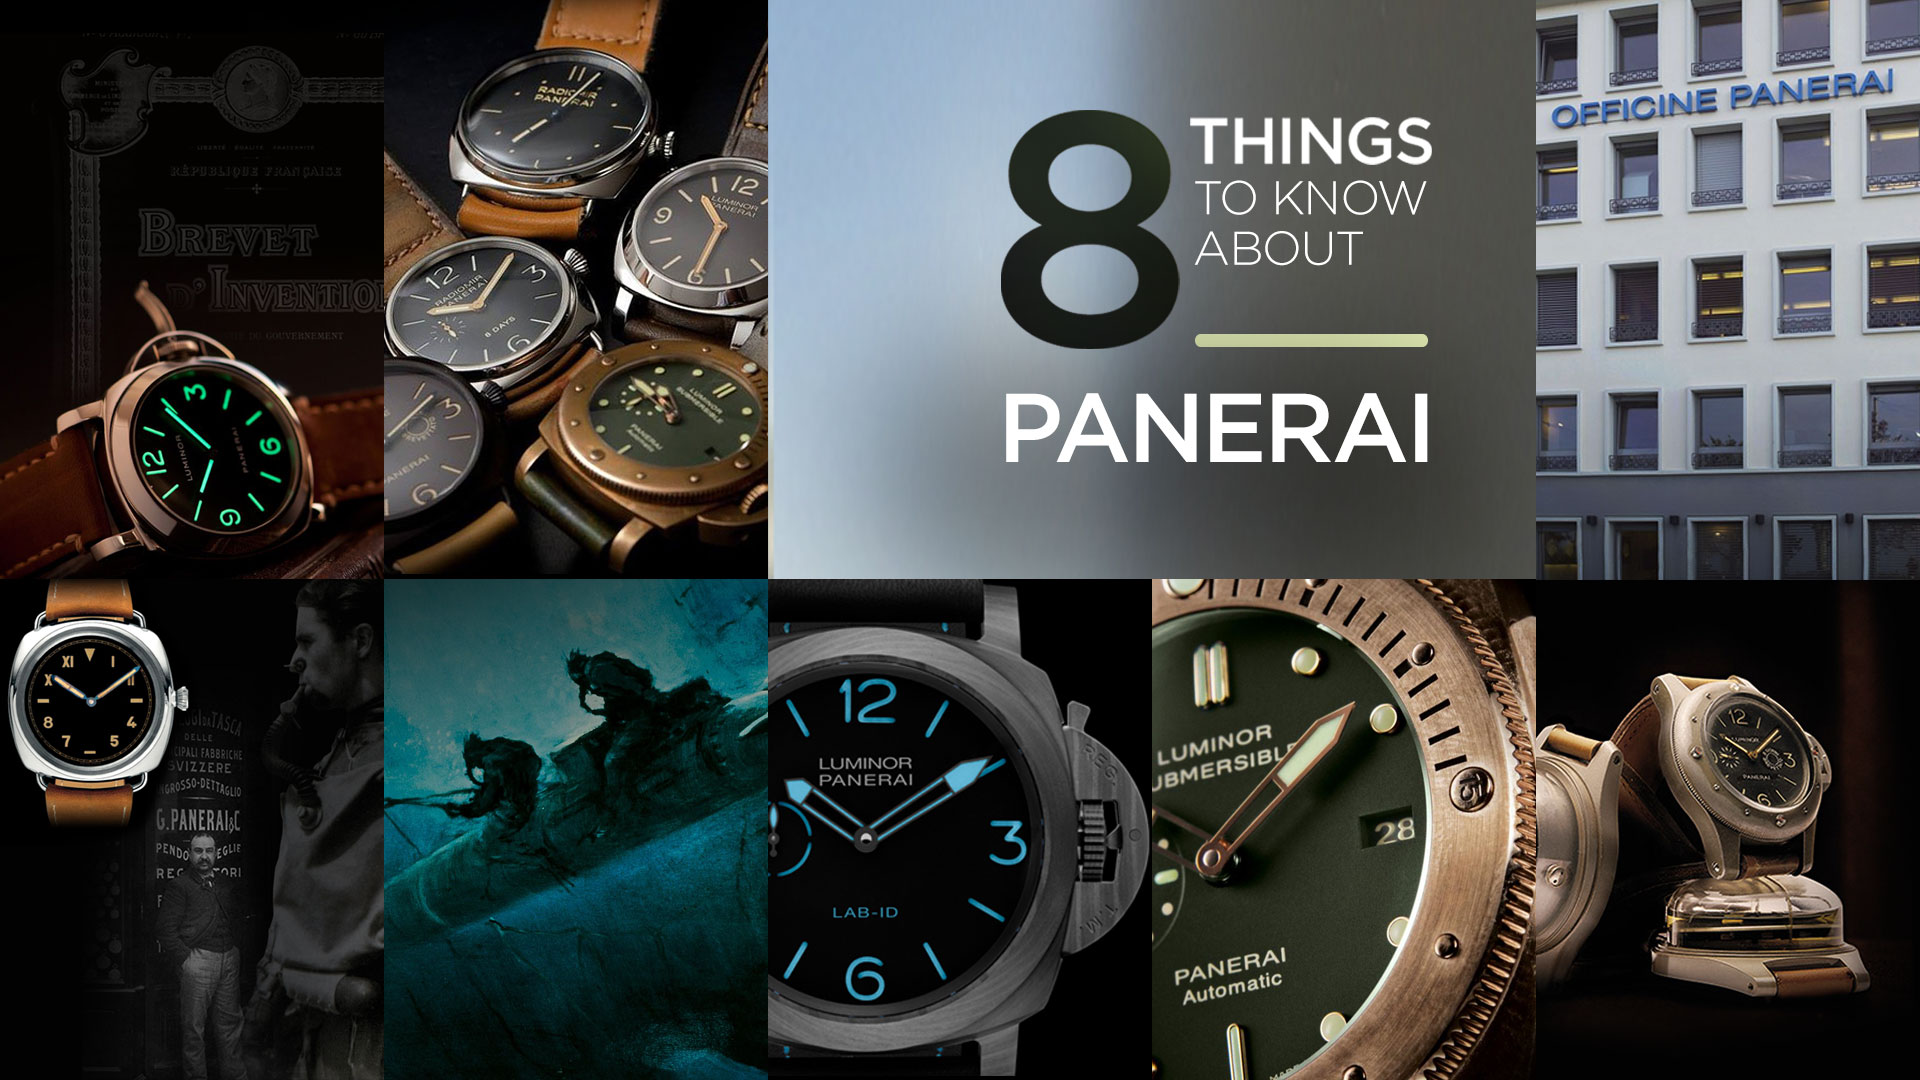 8 Things to Know About Panerai